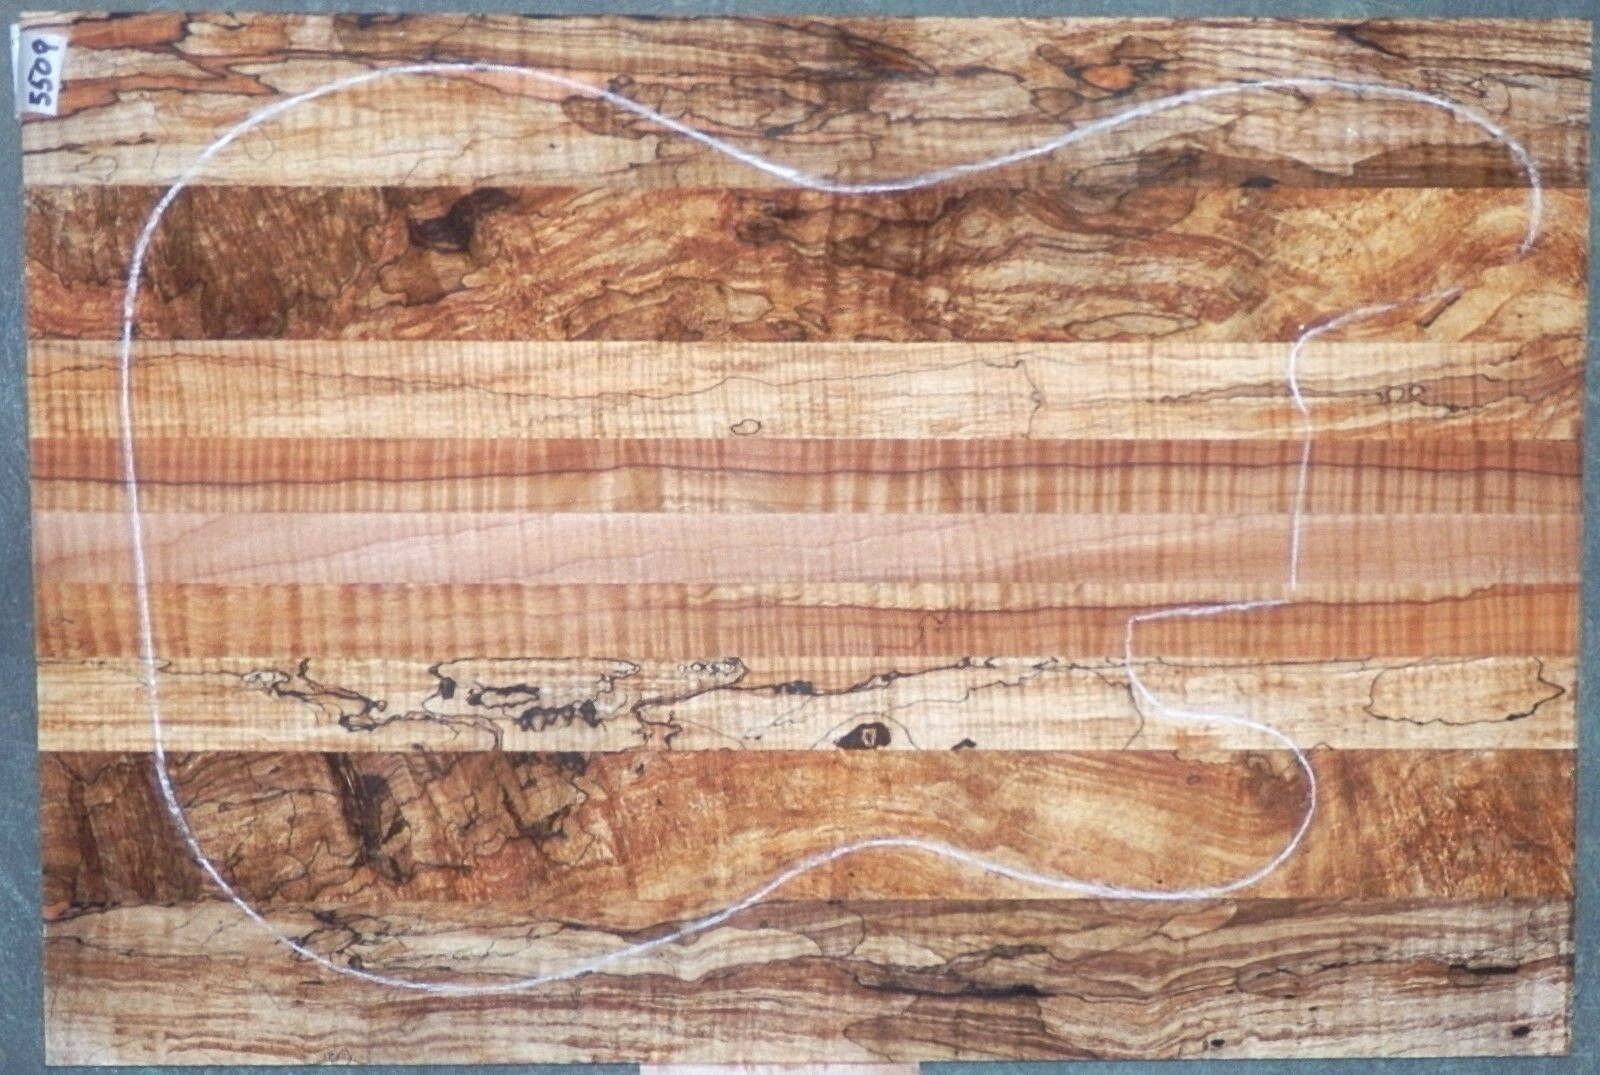 Flame Tiger Curly Maple Wood 5509 Luthier 5A ONE PC. GUITAR TOP 22.5x15.25x.375